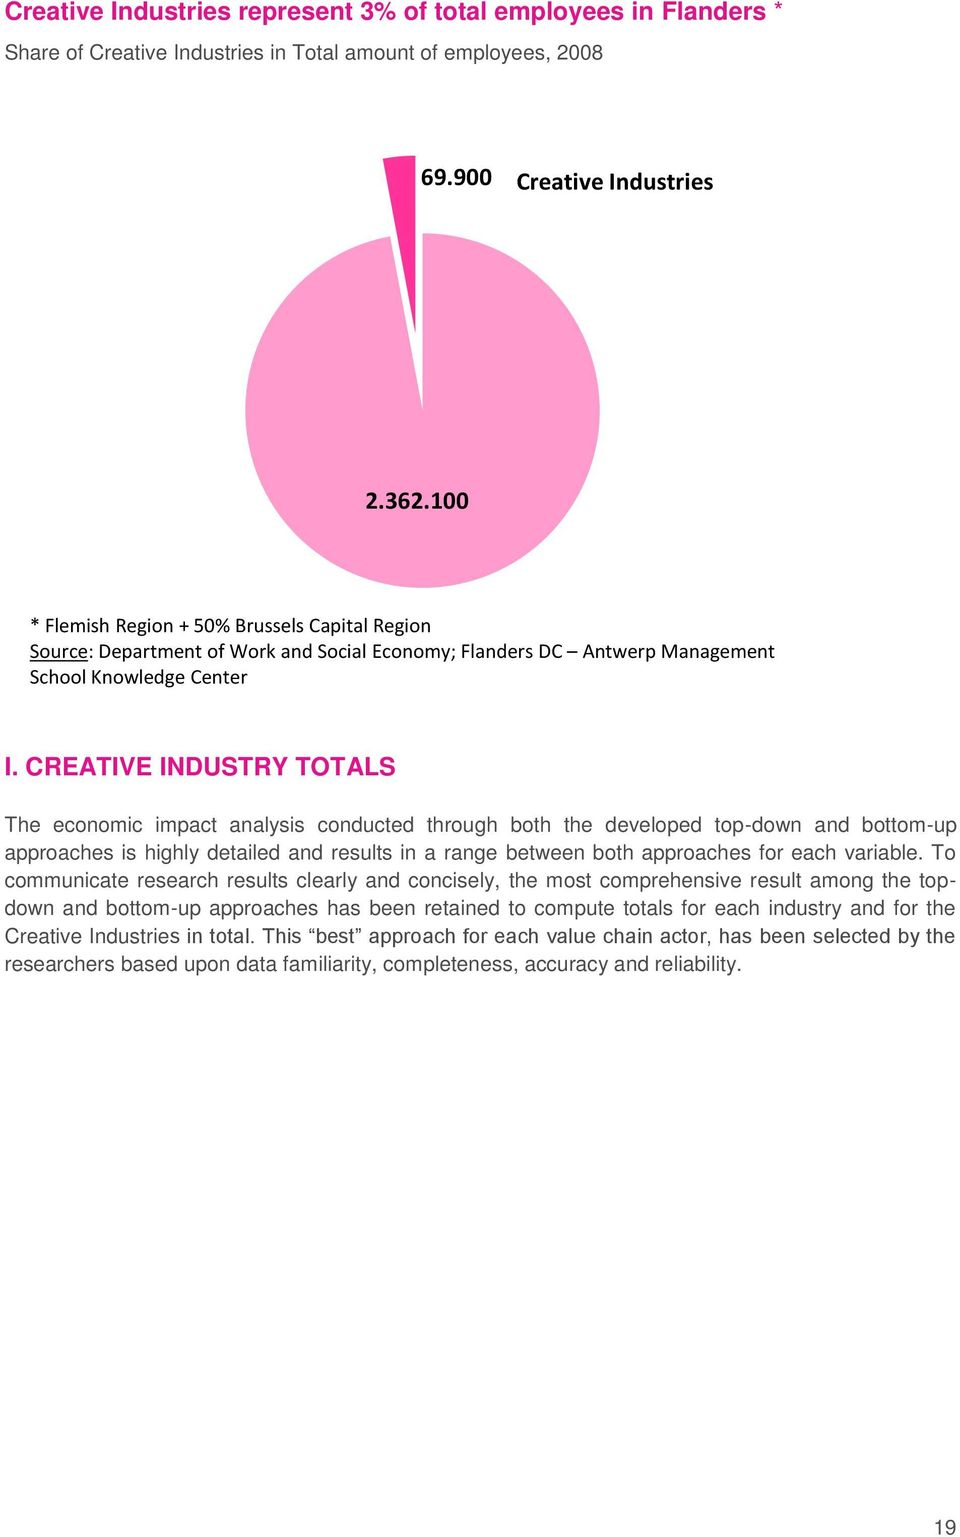 CREATIVE INDUSTRY TOTALS The economic impact analysis conducted through both the developed top-down and bottom-up approaches is highly detailed and results in a range between both approaches for each